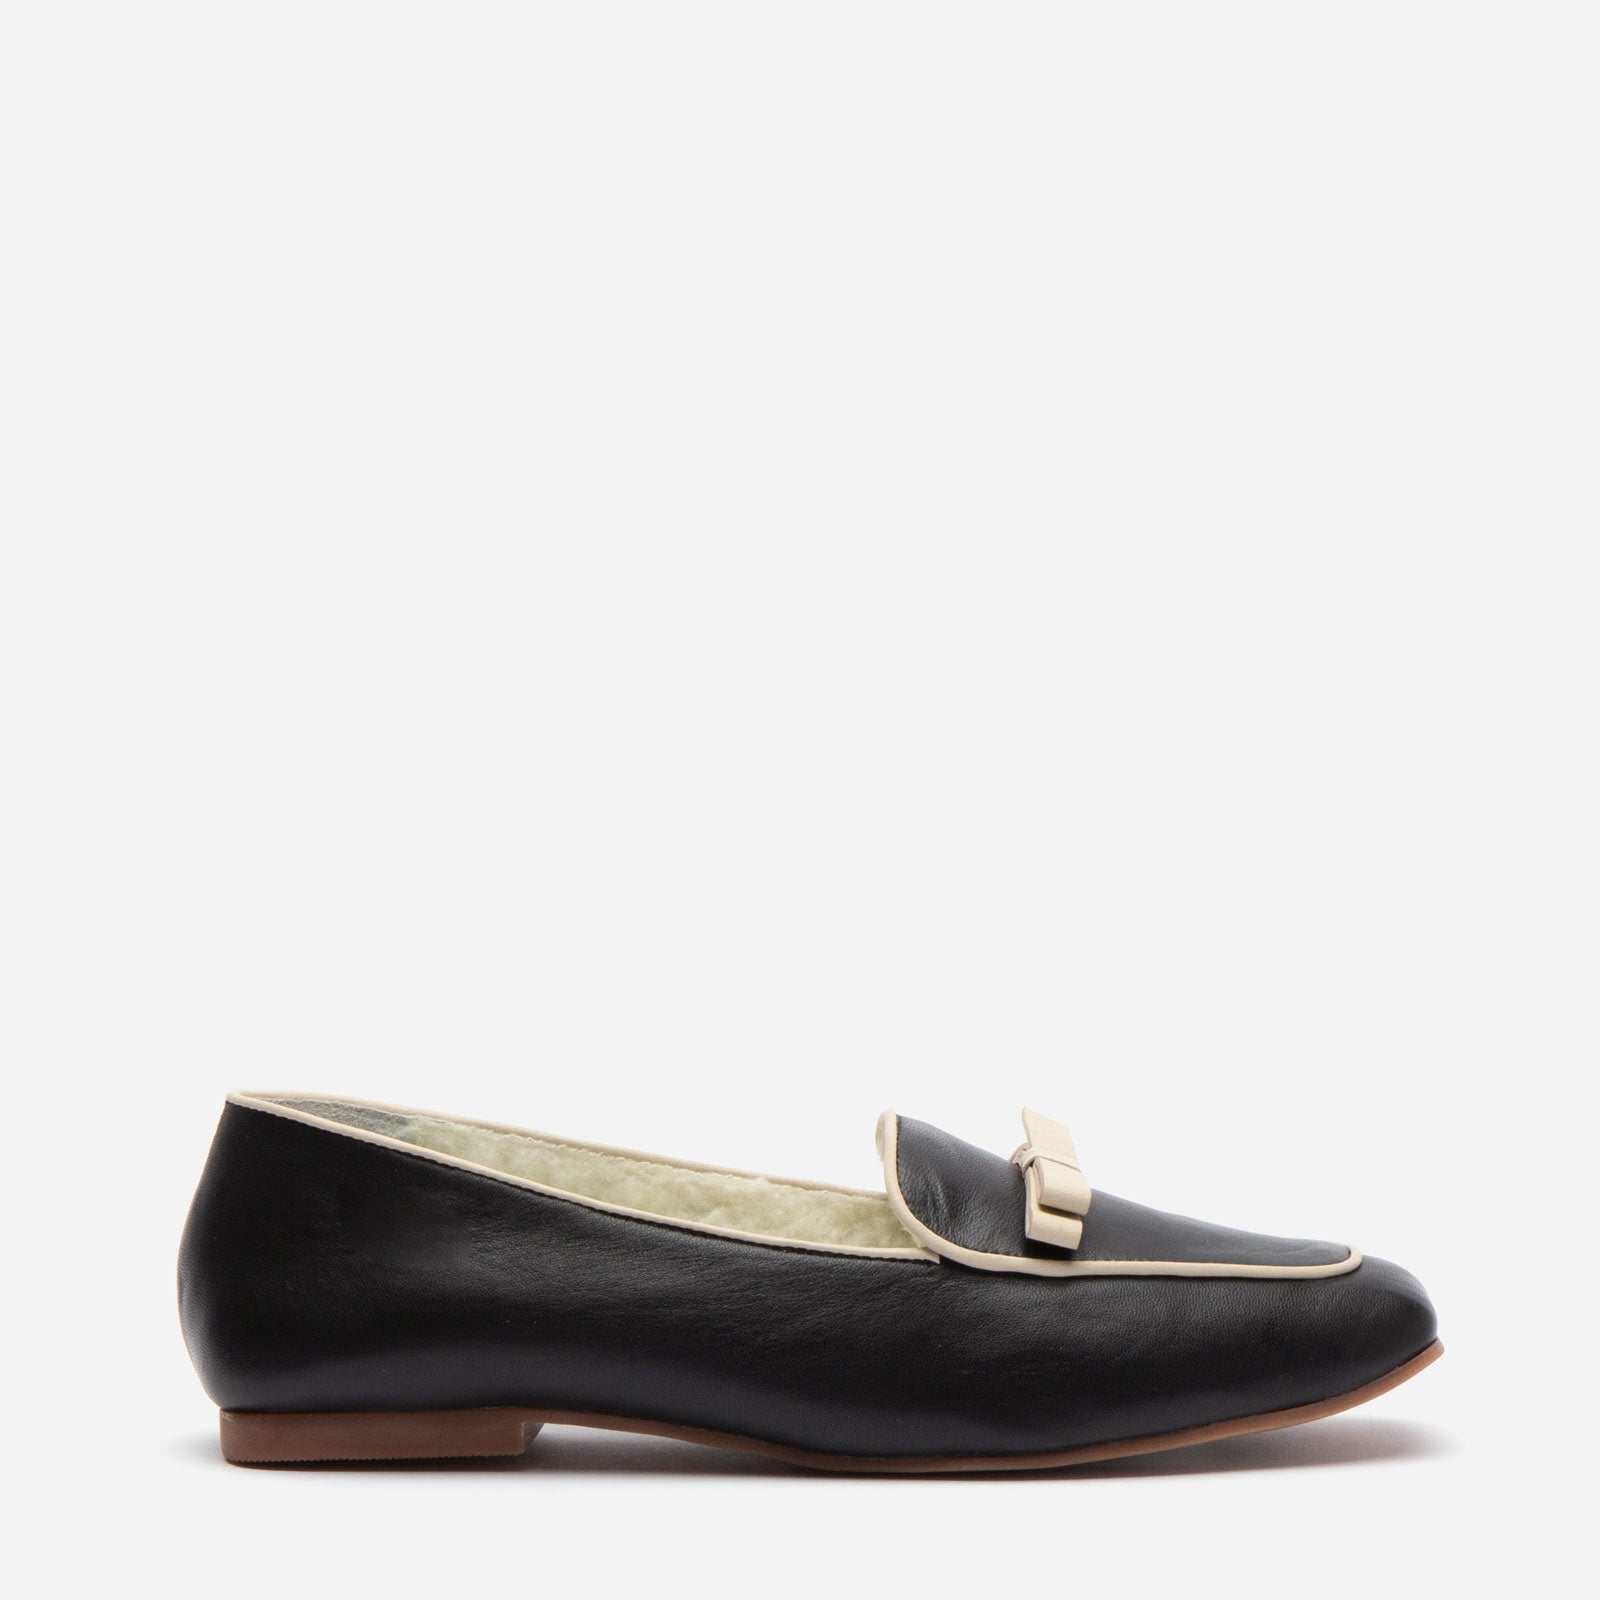 Suzanne Cozy Loafer Nappa Faux Shearling Black